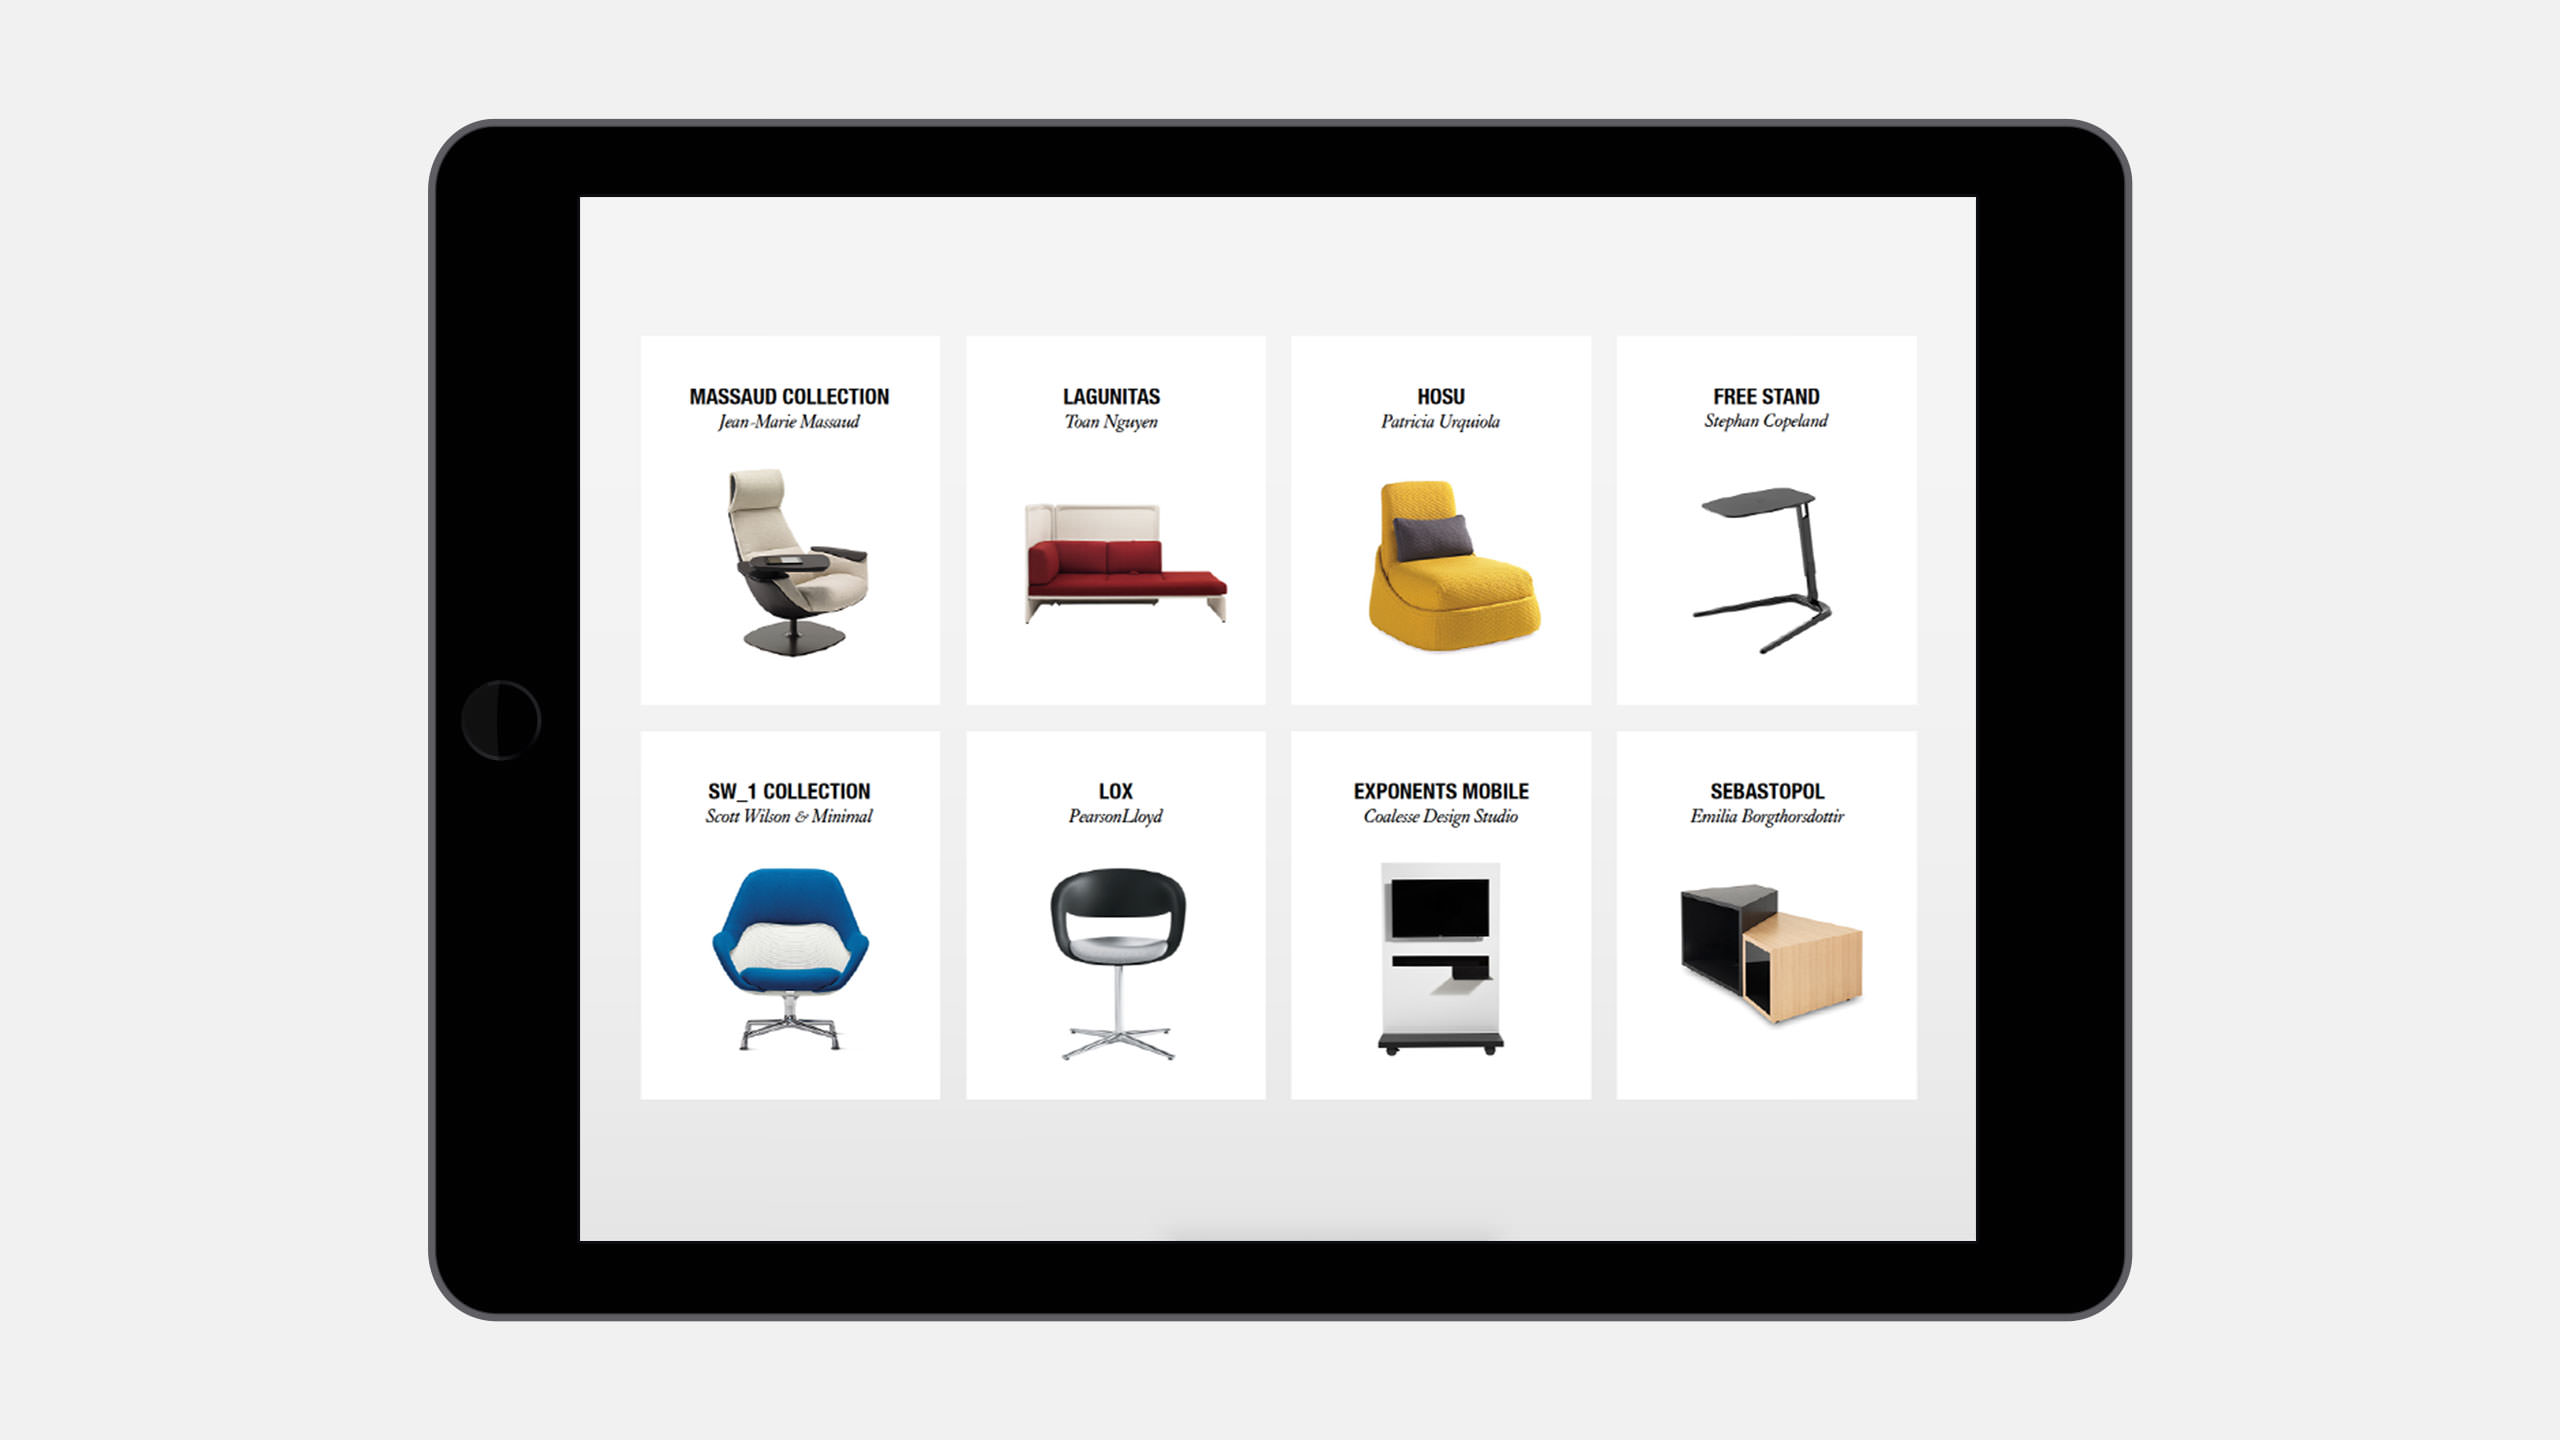 Coalesse Interactive Sales Tool Products on iPad